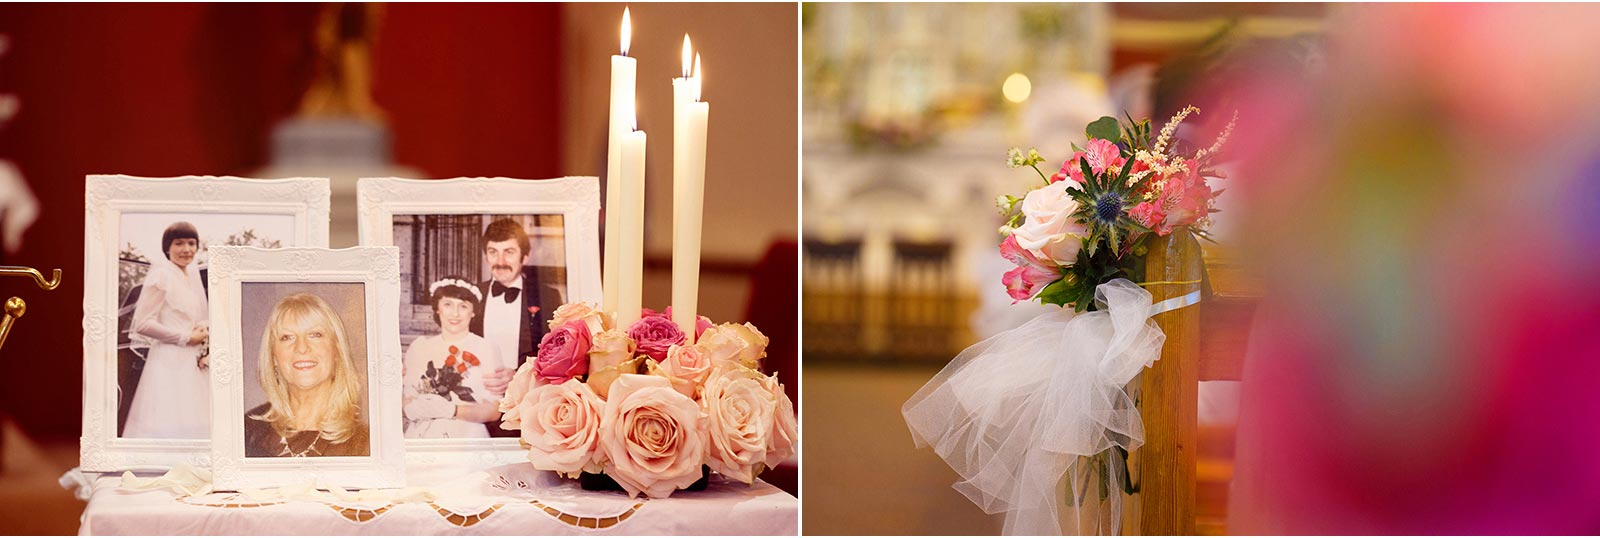 moments and flowers decorate church